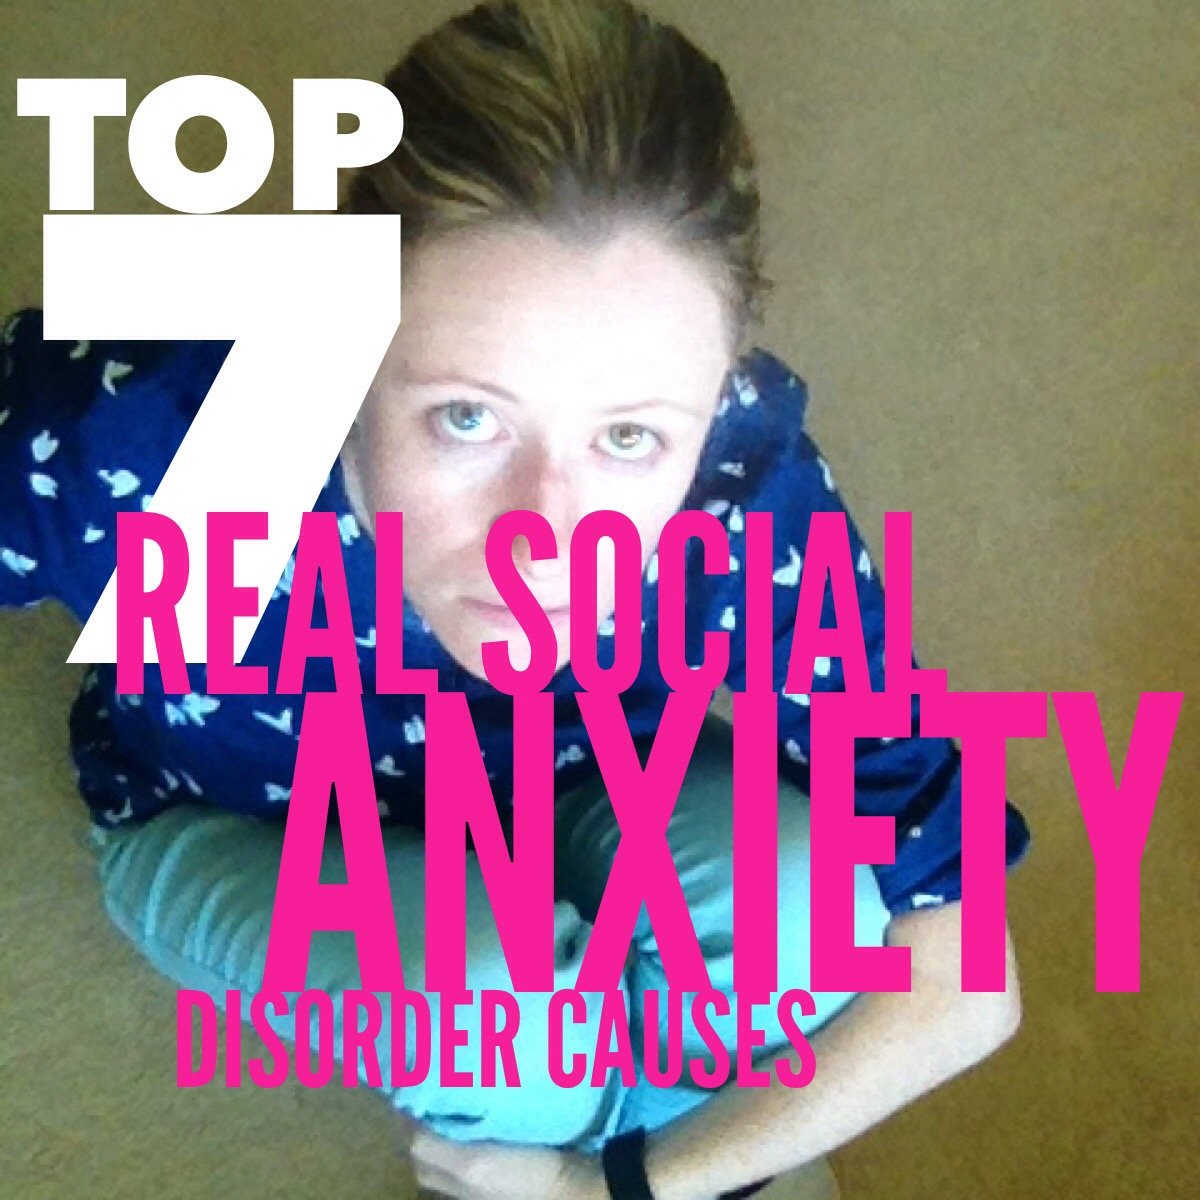 Top 7 REAL Social Anxiety Disorder Causes